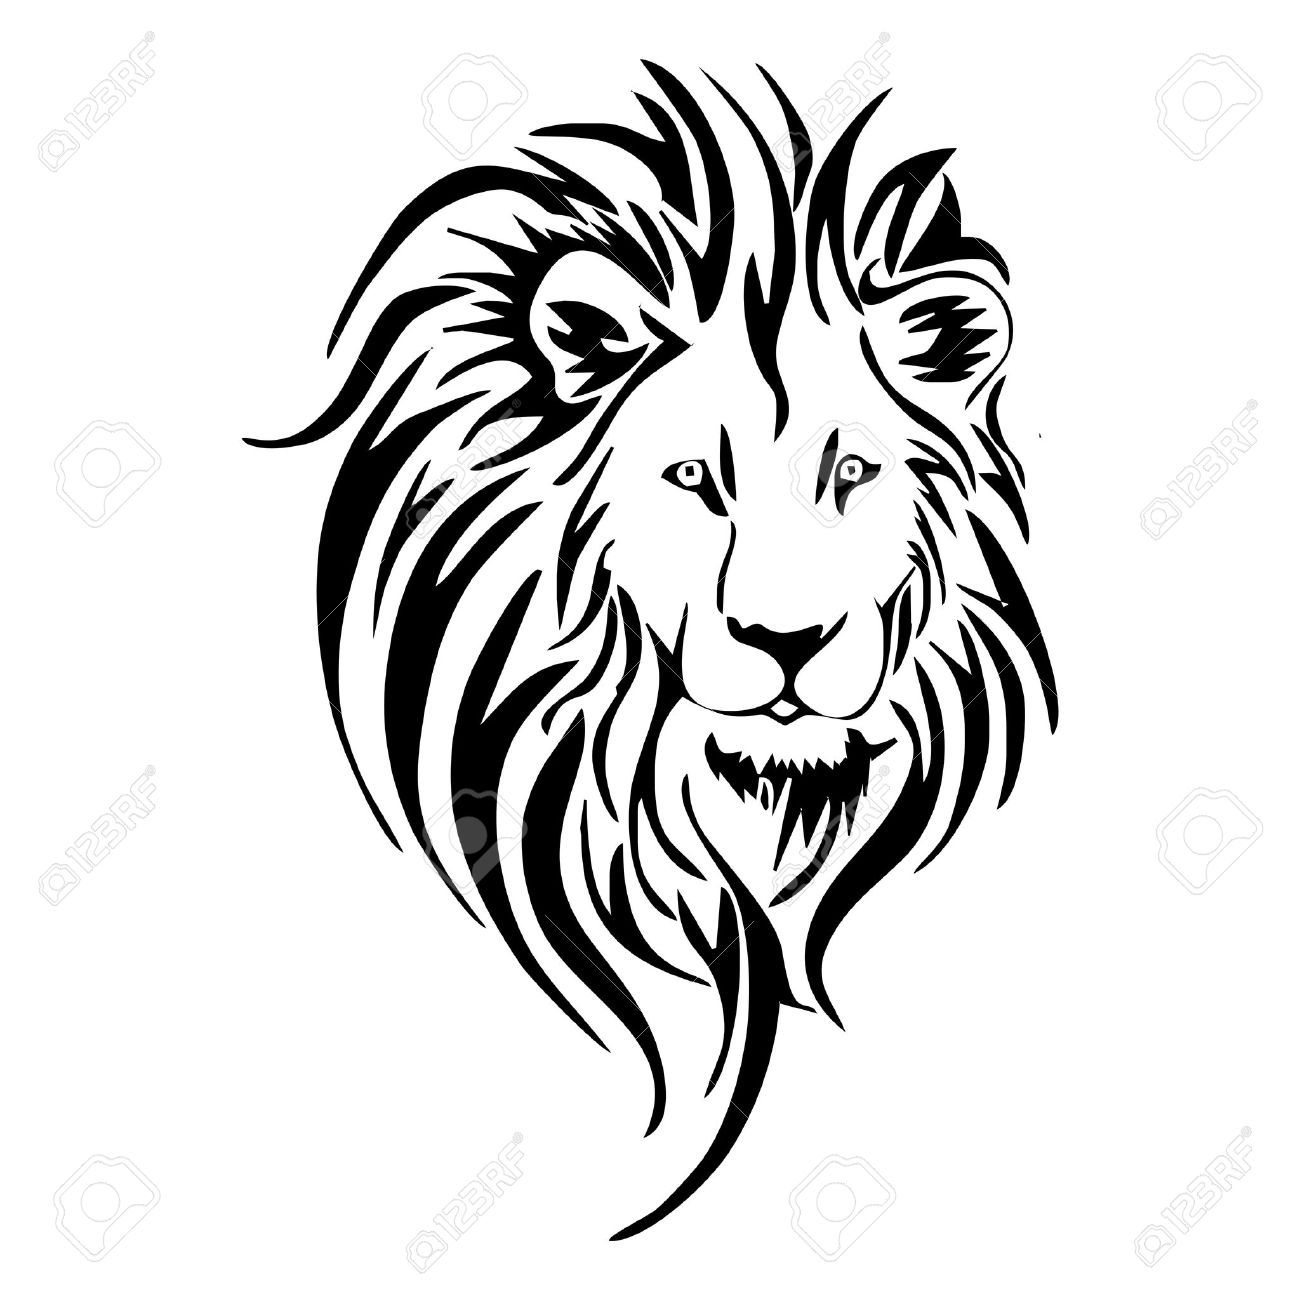 hight resolution of lion head tattoo royalty free cliparts vectors and stock